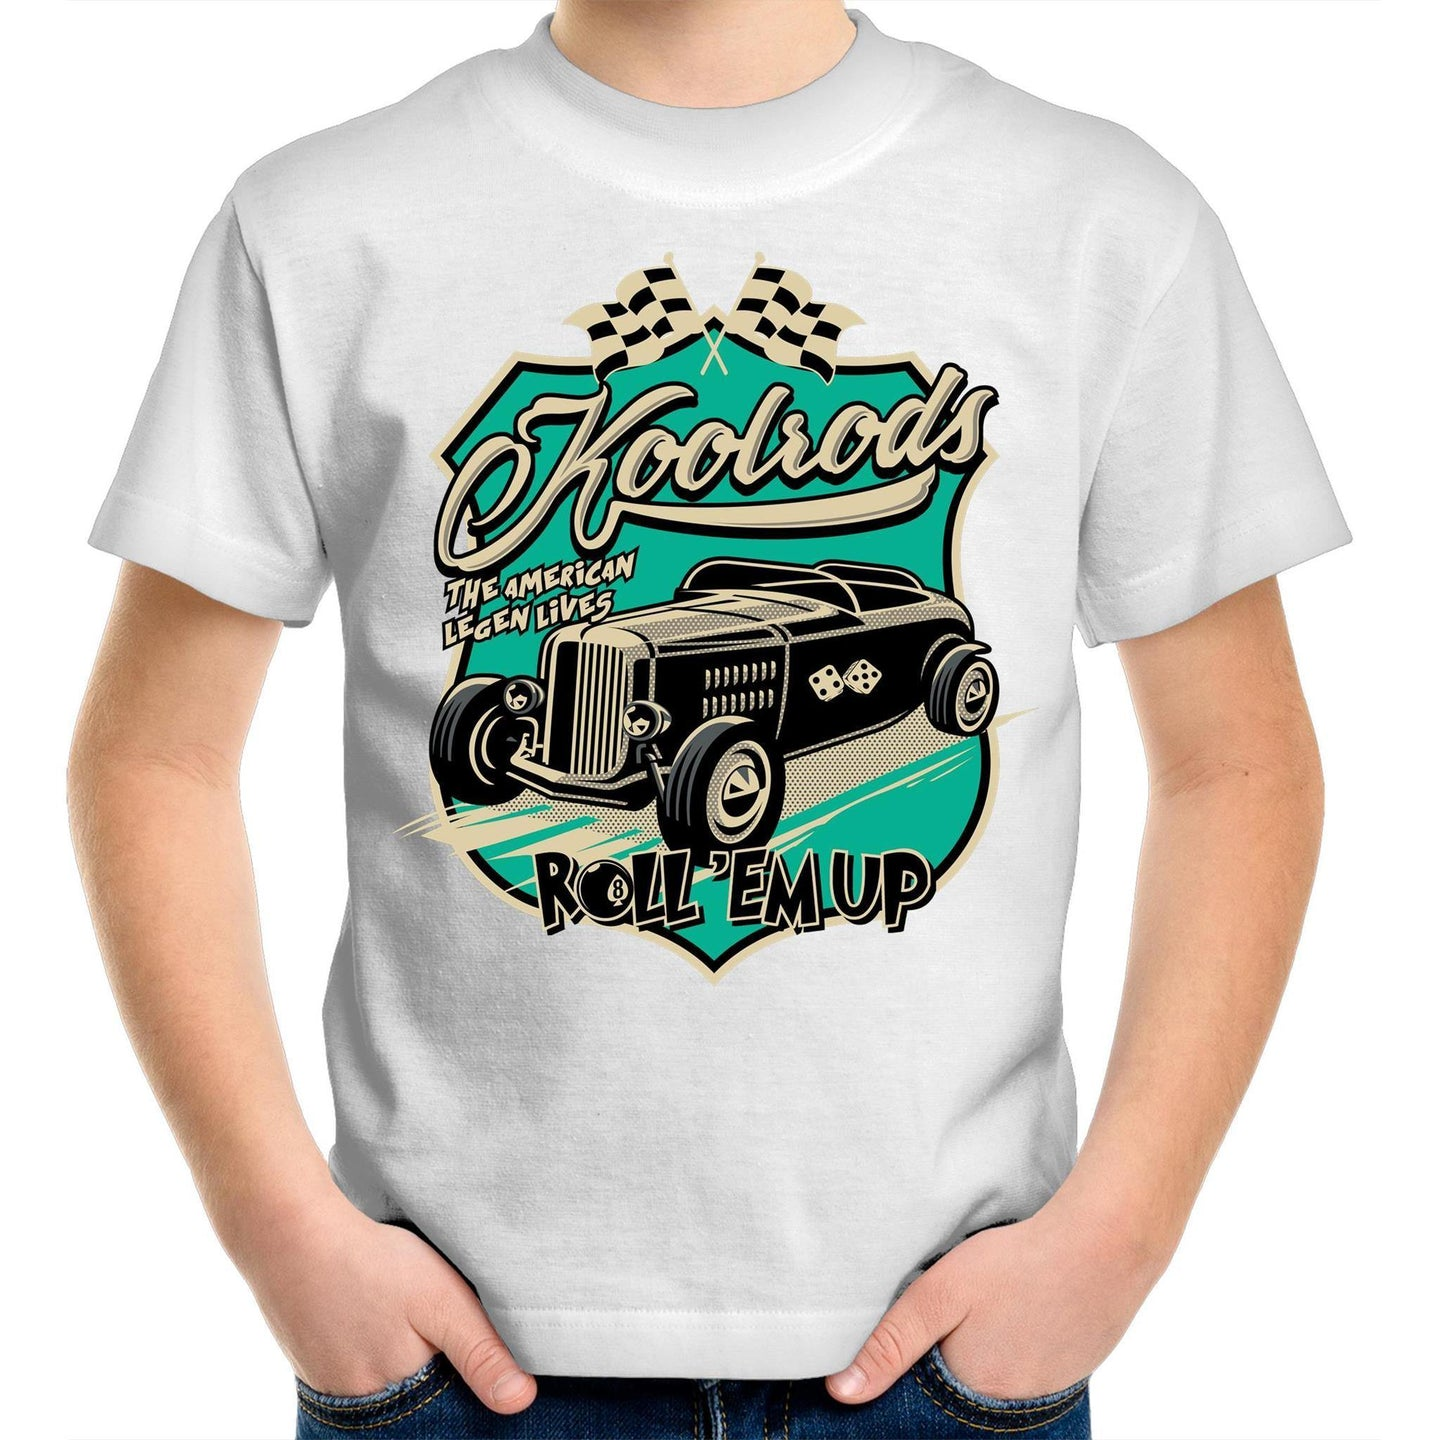 KOOLRODS TURQUOISE Kids Youth Crew T-Shirt 2-14